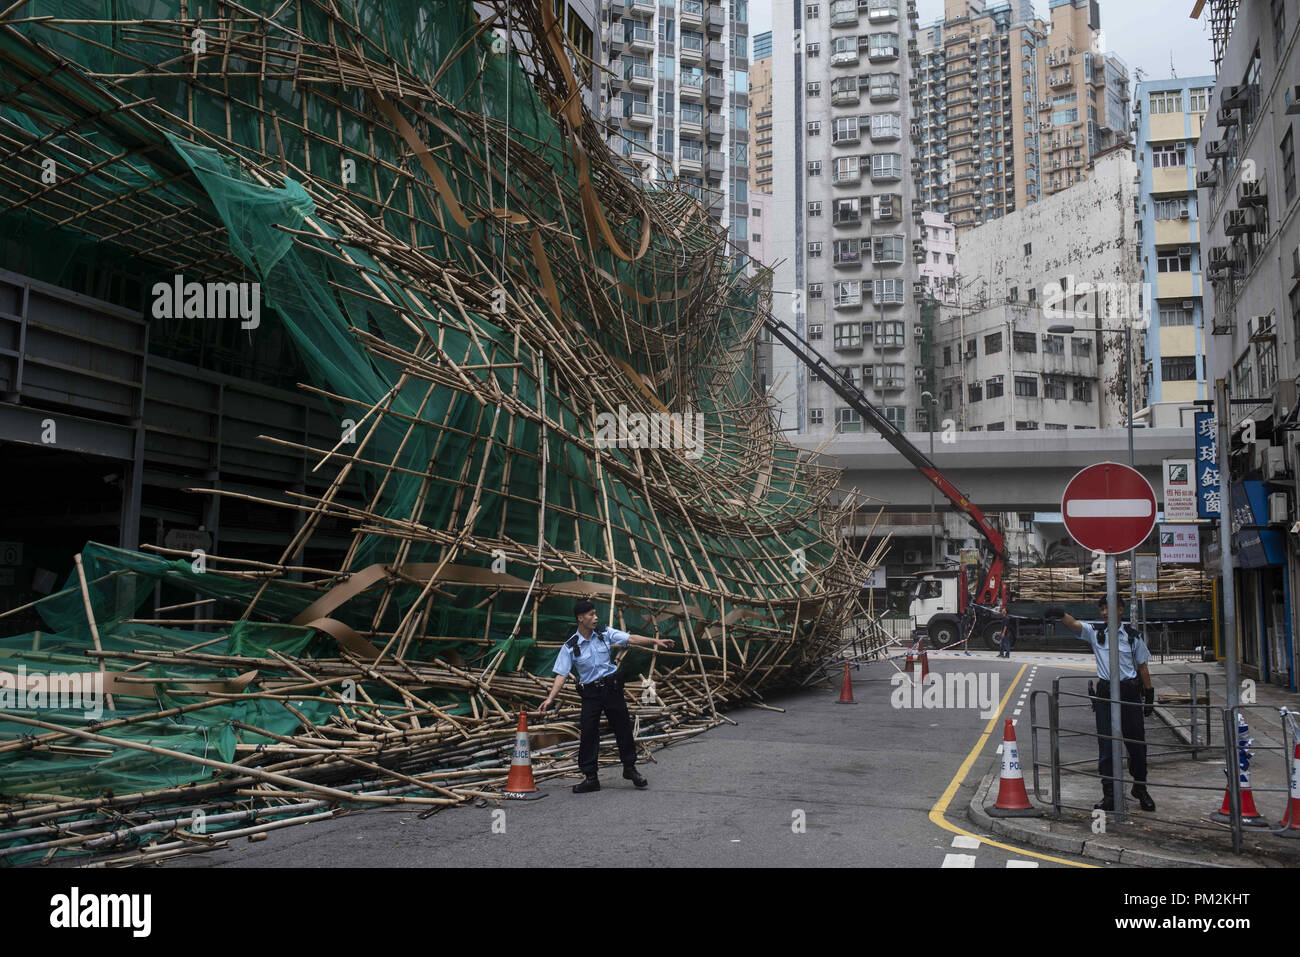 Hong Kong, Kowloon, China. 17th Sep, 2018. Police officers cut the street after bamboo scaffolding has collapsed and fall into the street. Super Typhoon Mangkhut aftermath is visible in most districts of Hong Kong.The super typhoon Mangkhut has passed next to Hong Kong on the 16th September causing large scale damages around the city, there are 432 people injured due to the storm with 2 still in critical condition. Credit: Miguel Candela/SOPA Images/ZUMA Wire/Alamy Live News - Stock Image